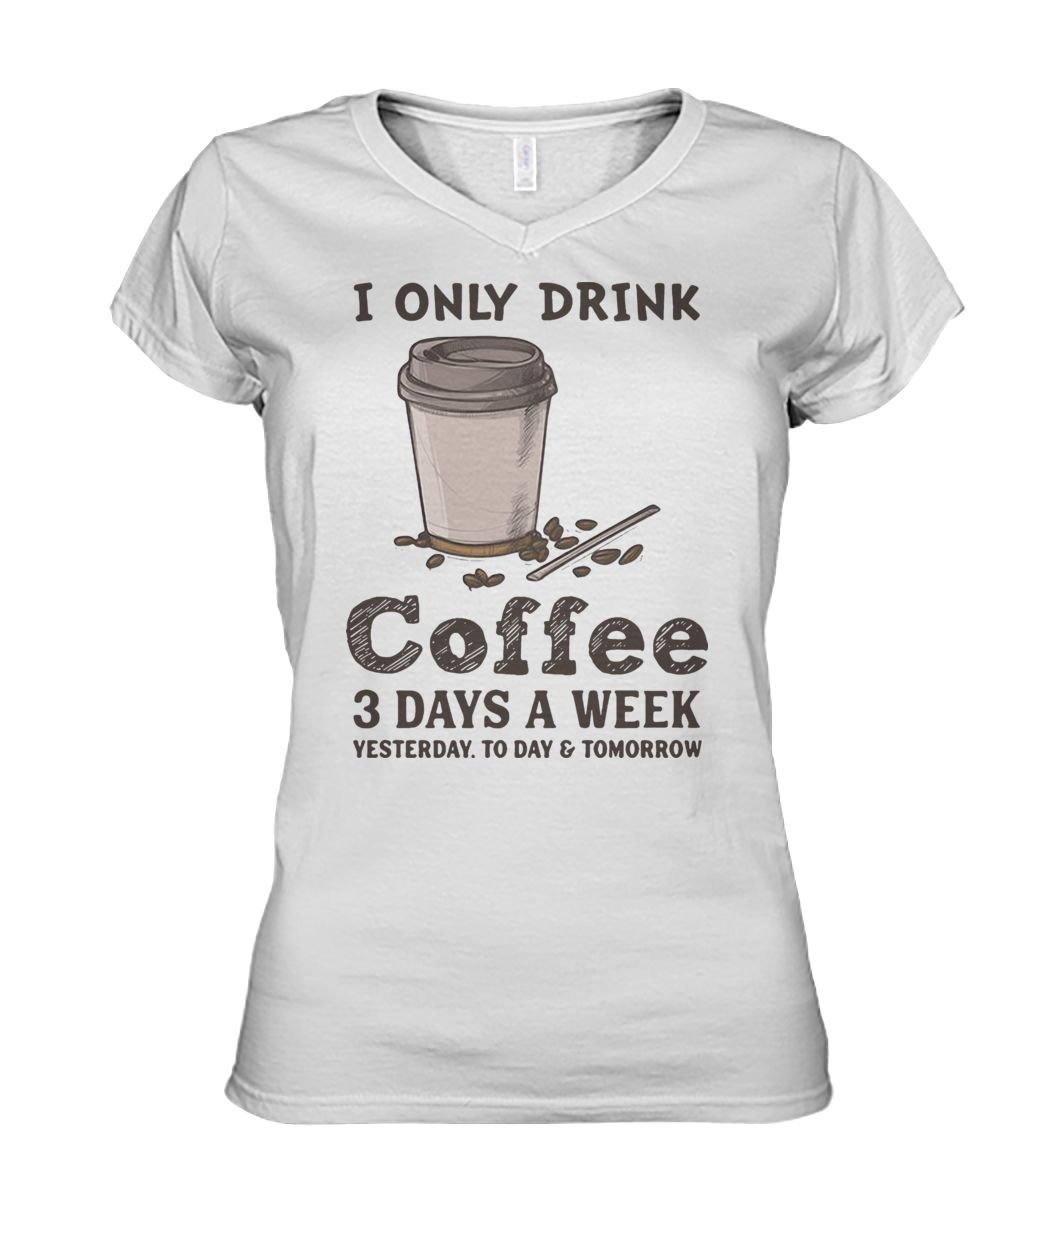 I only drink coffee 3 days a week yesterday today and tomorrow women's v-neck